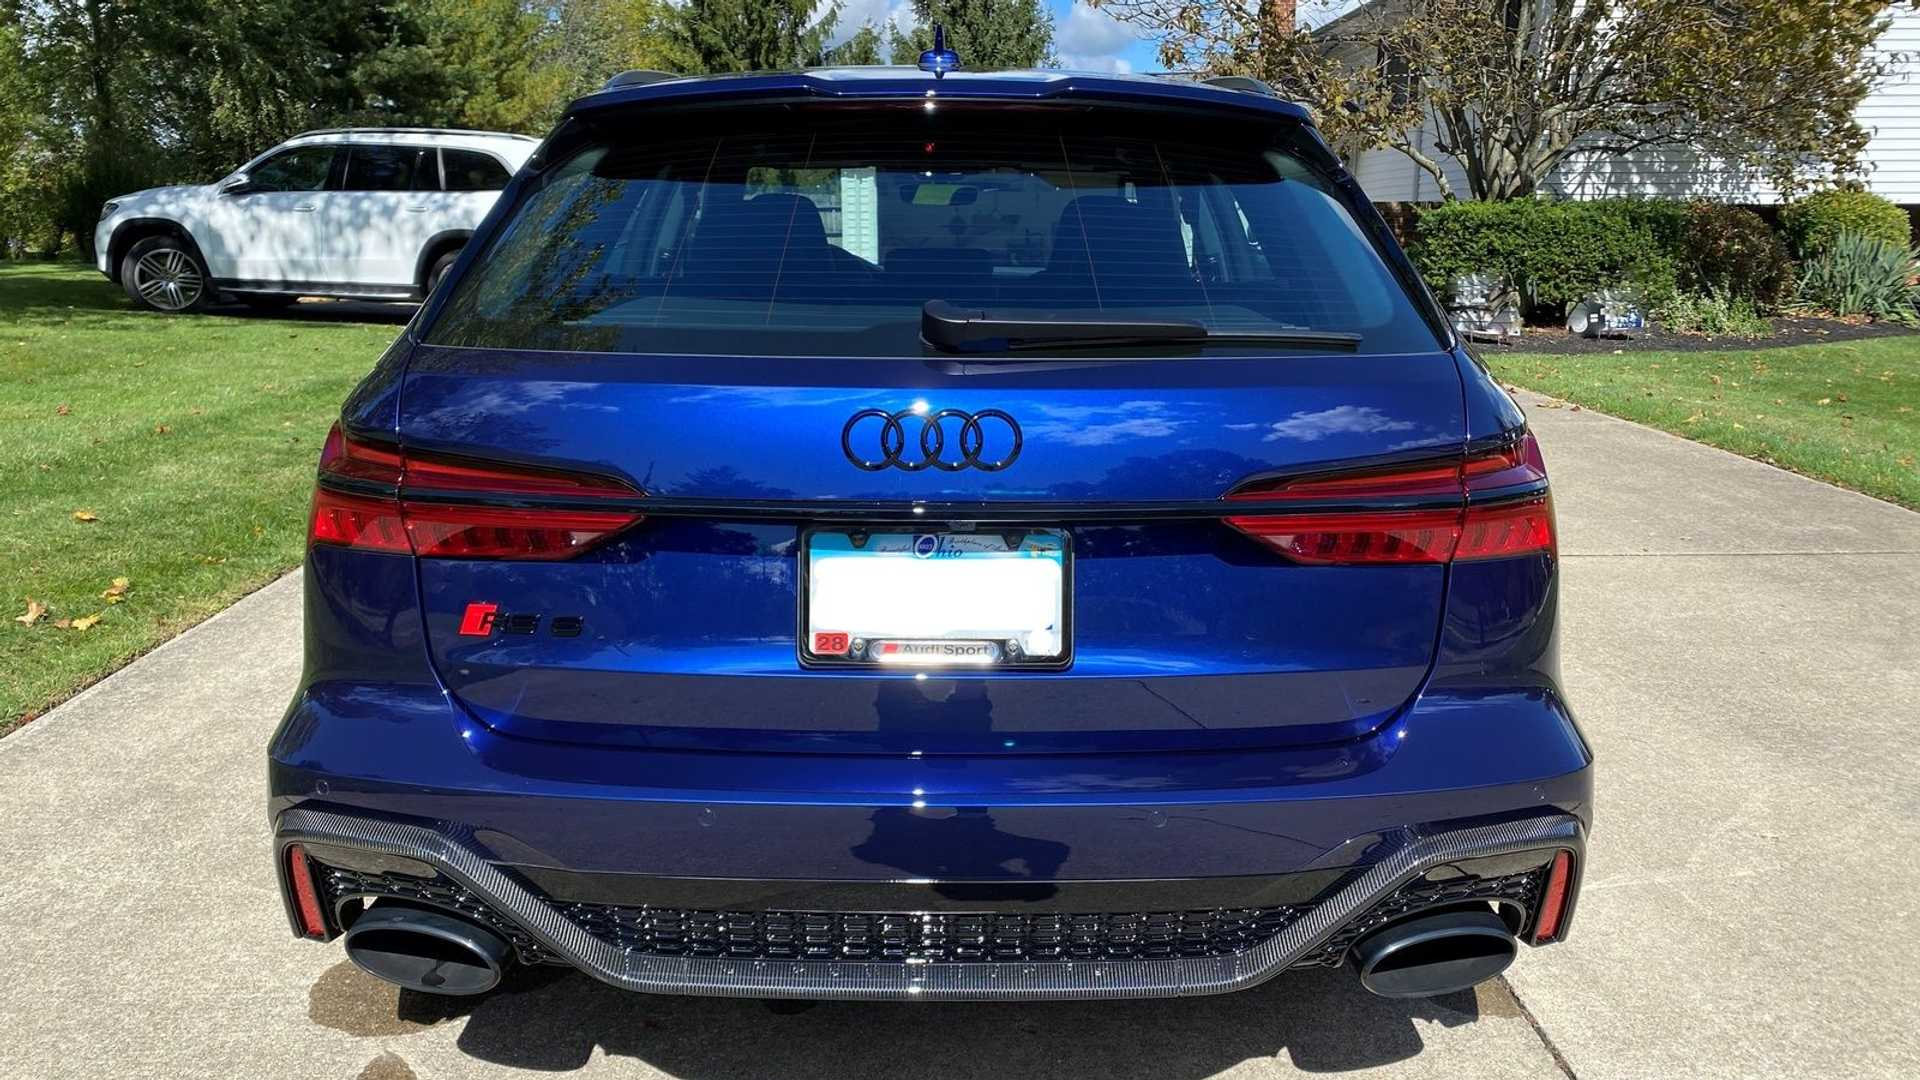 2021 Audi RS6 Avant Owner Selling Super Wagon For $207,000 ...